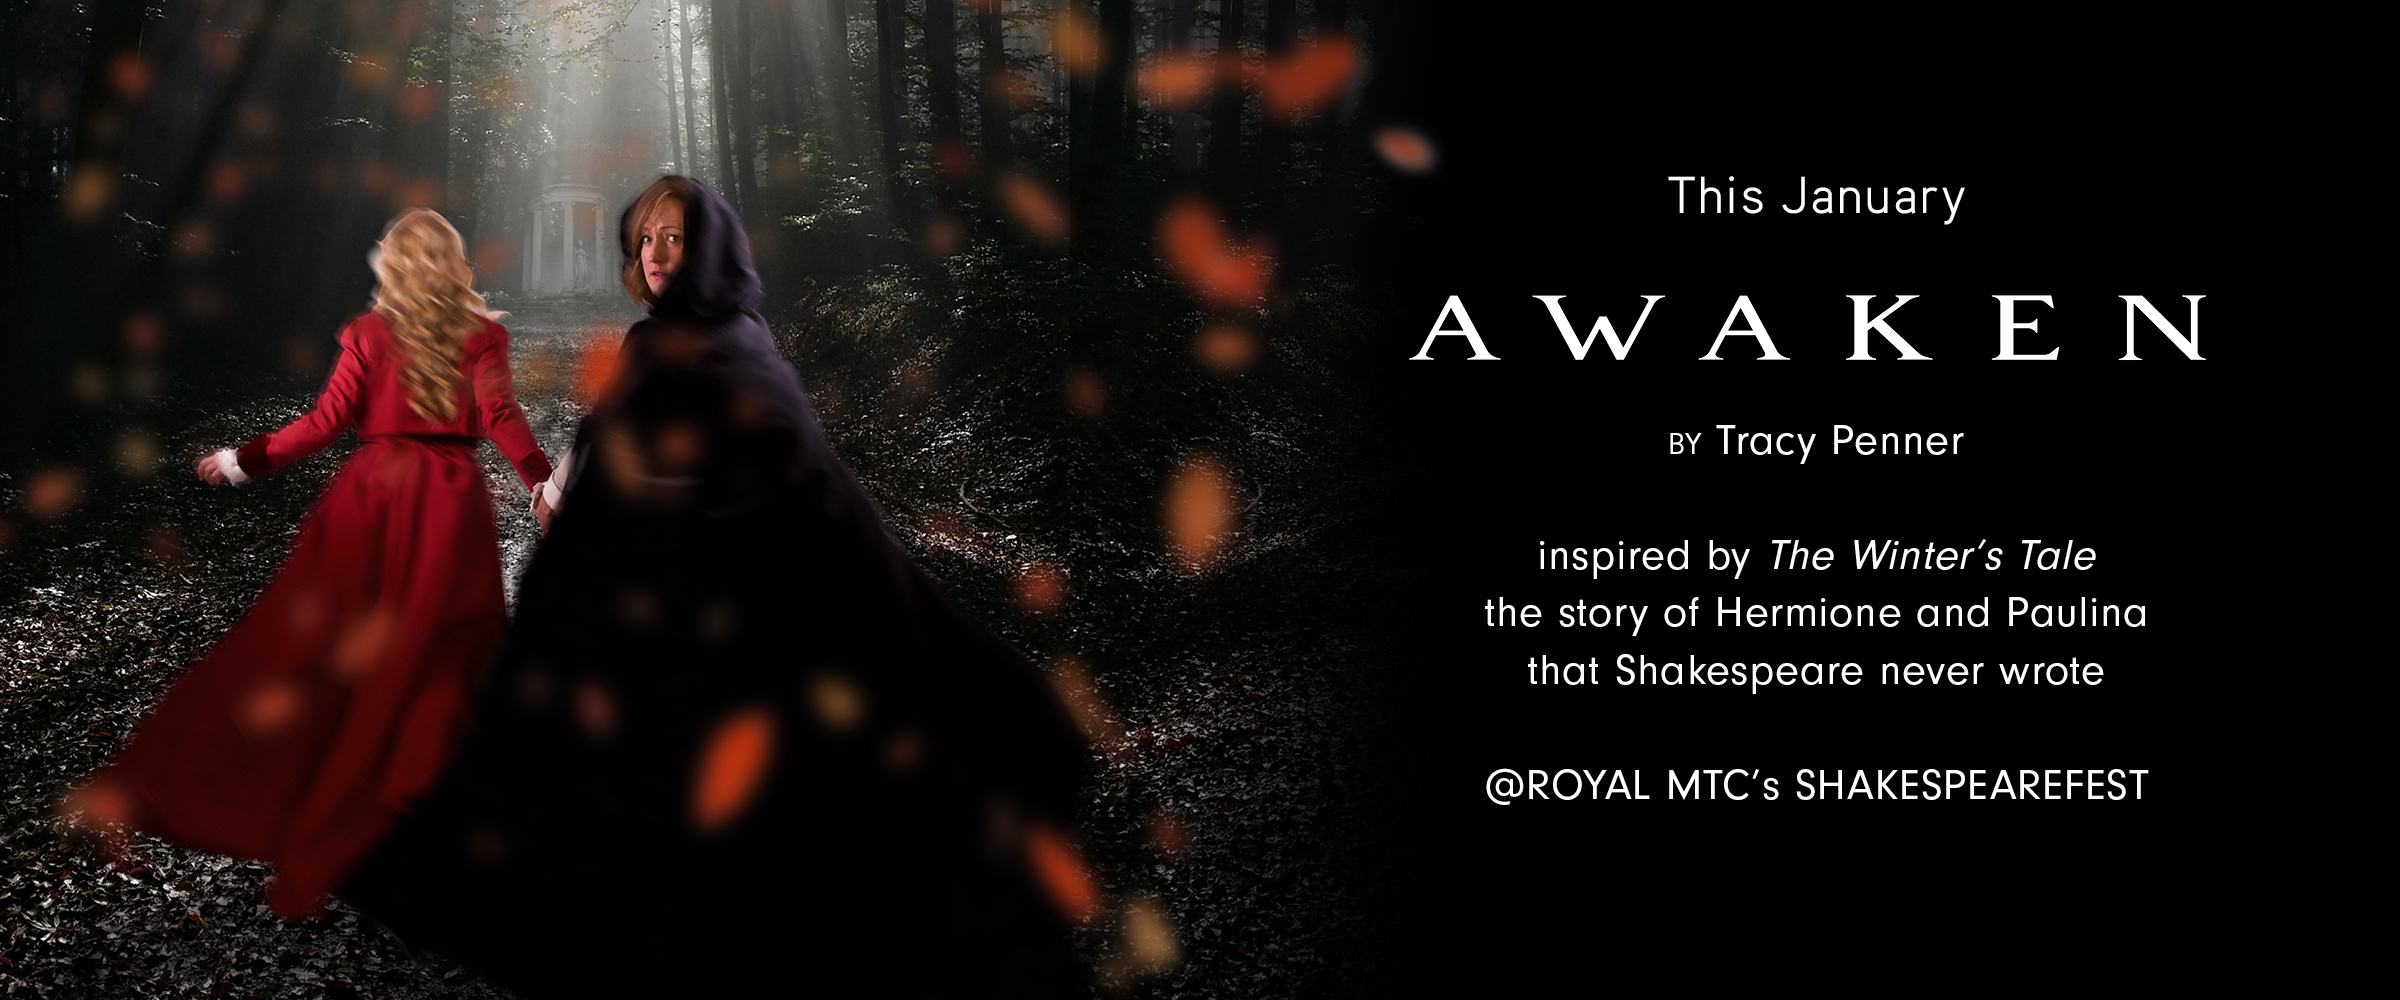 This January: AWAKE by Tracy Penner inspired by The Winter's Tale the story of Hermione and Paulina that Shakespeare never wrote @ROYAL MTC's SHAKESPEAREFEST